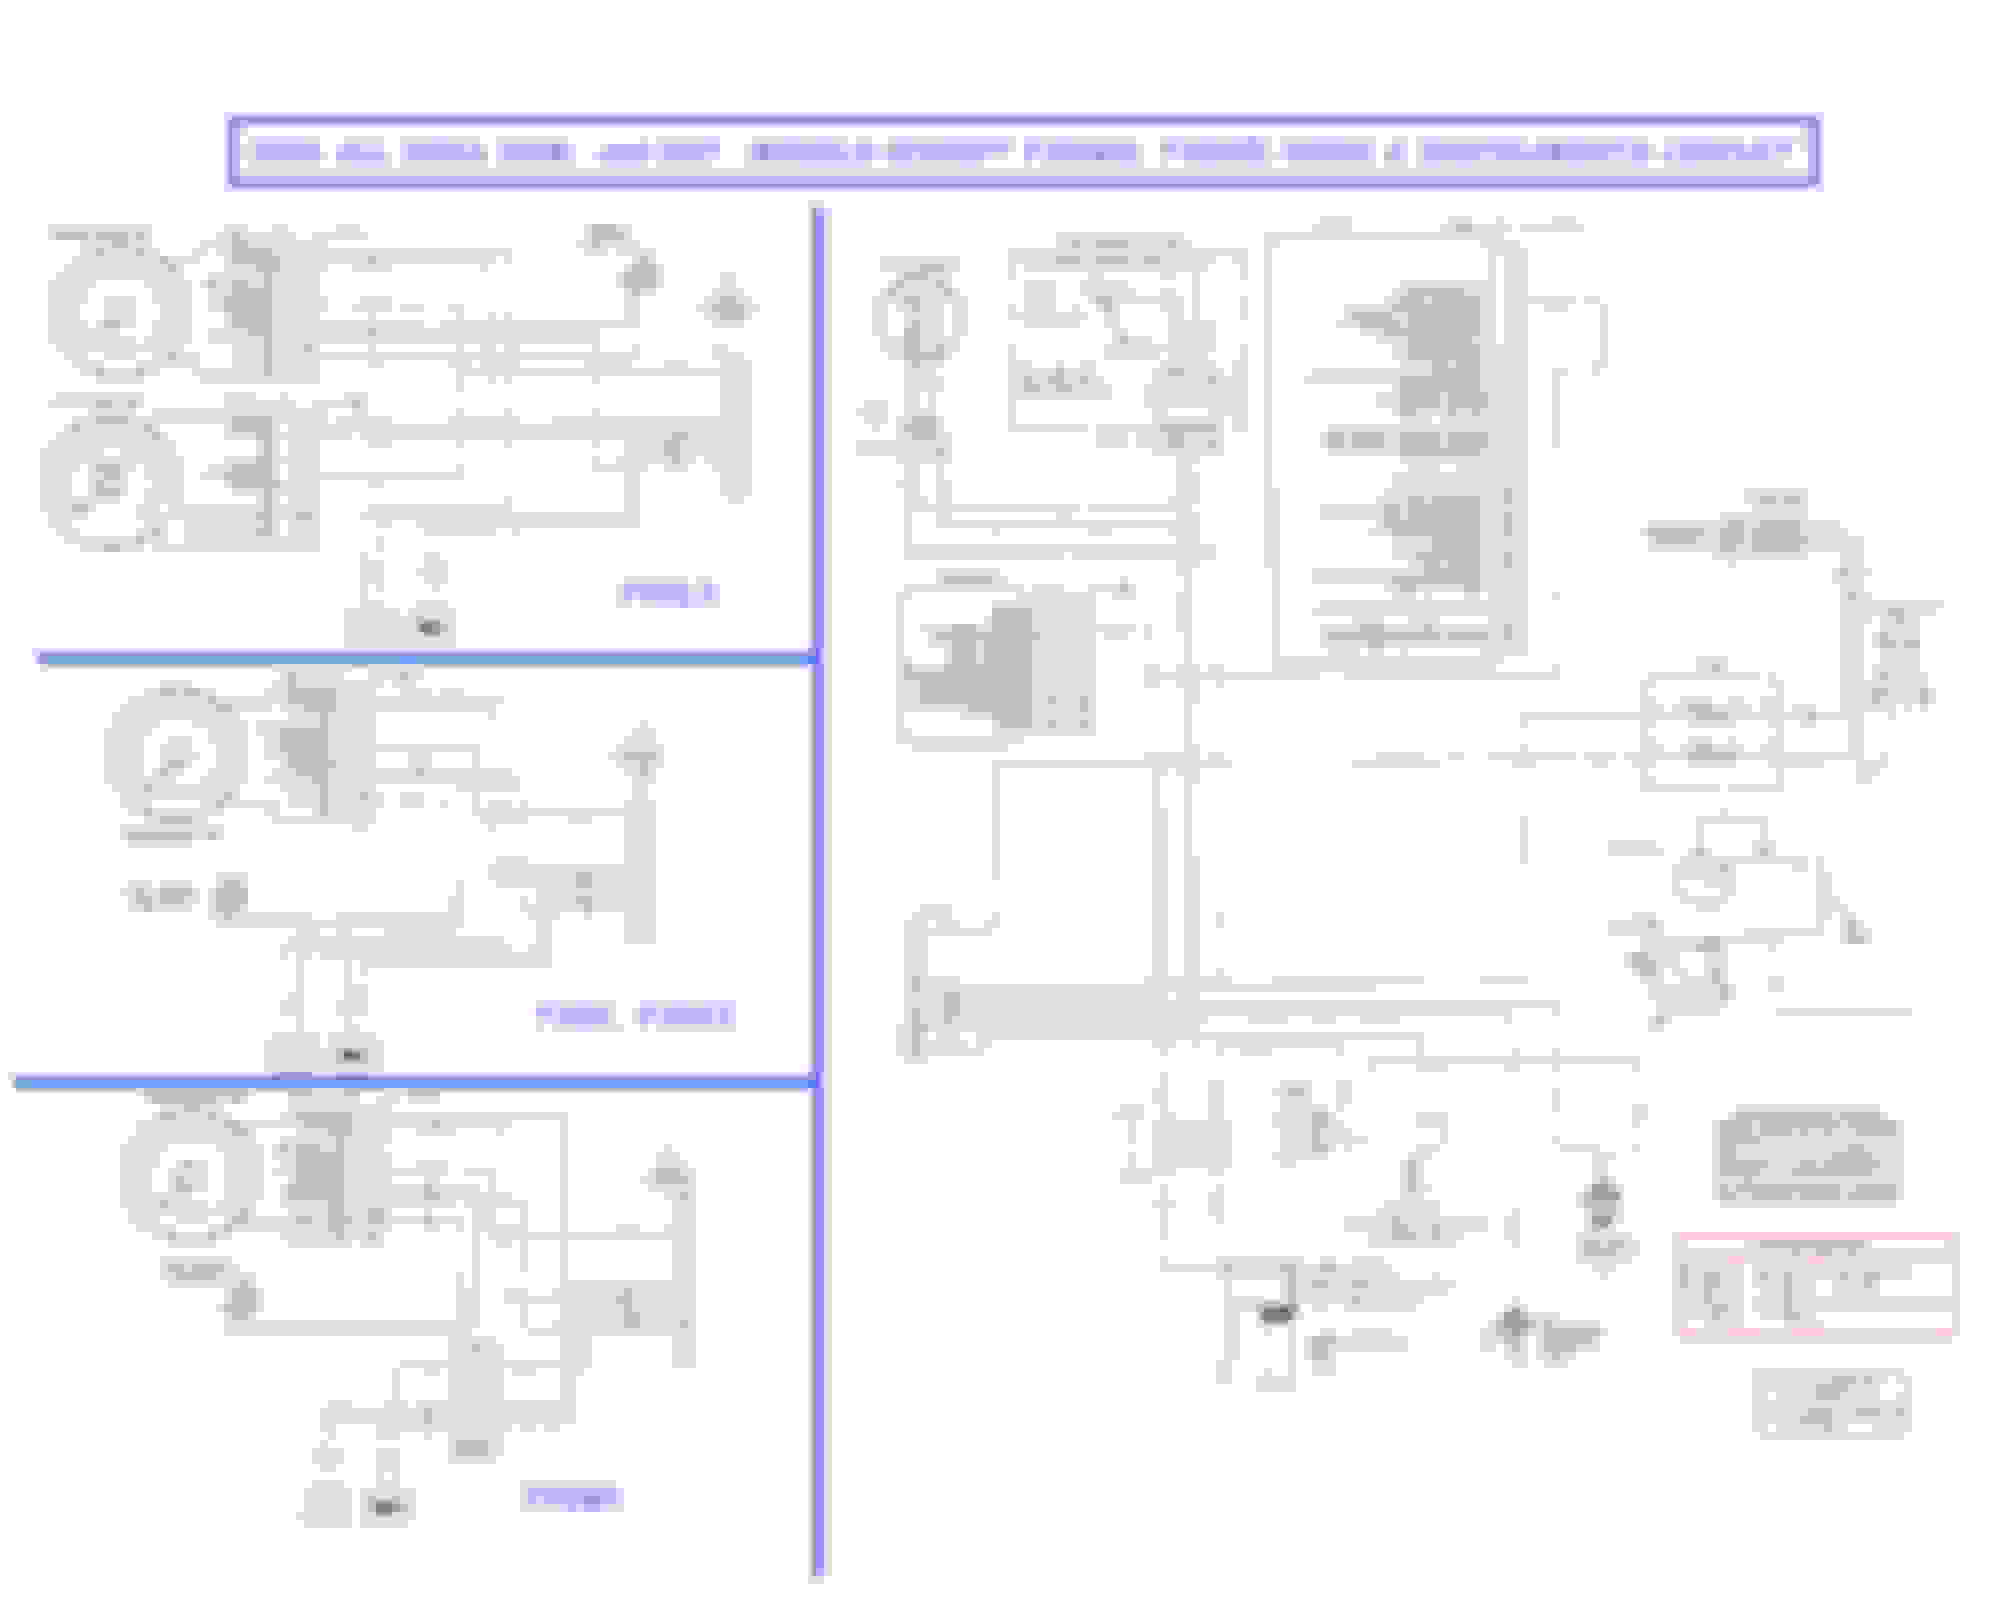 99 softail wiring diagram best wiring diagram image 2018 rh diagram  oceanodigital us Basic Harley Wiring Diagram Harley Ignition Wiring Diagram  1999